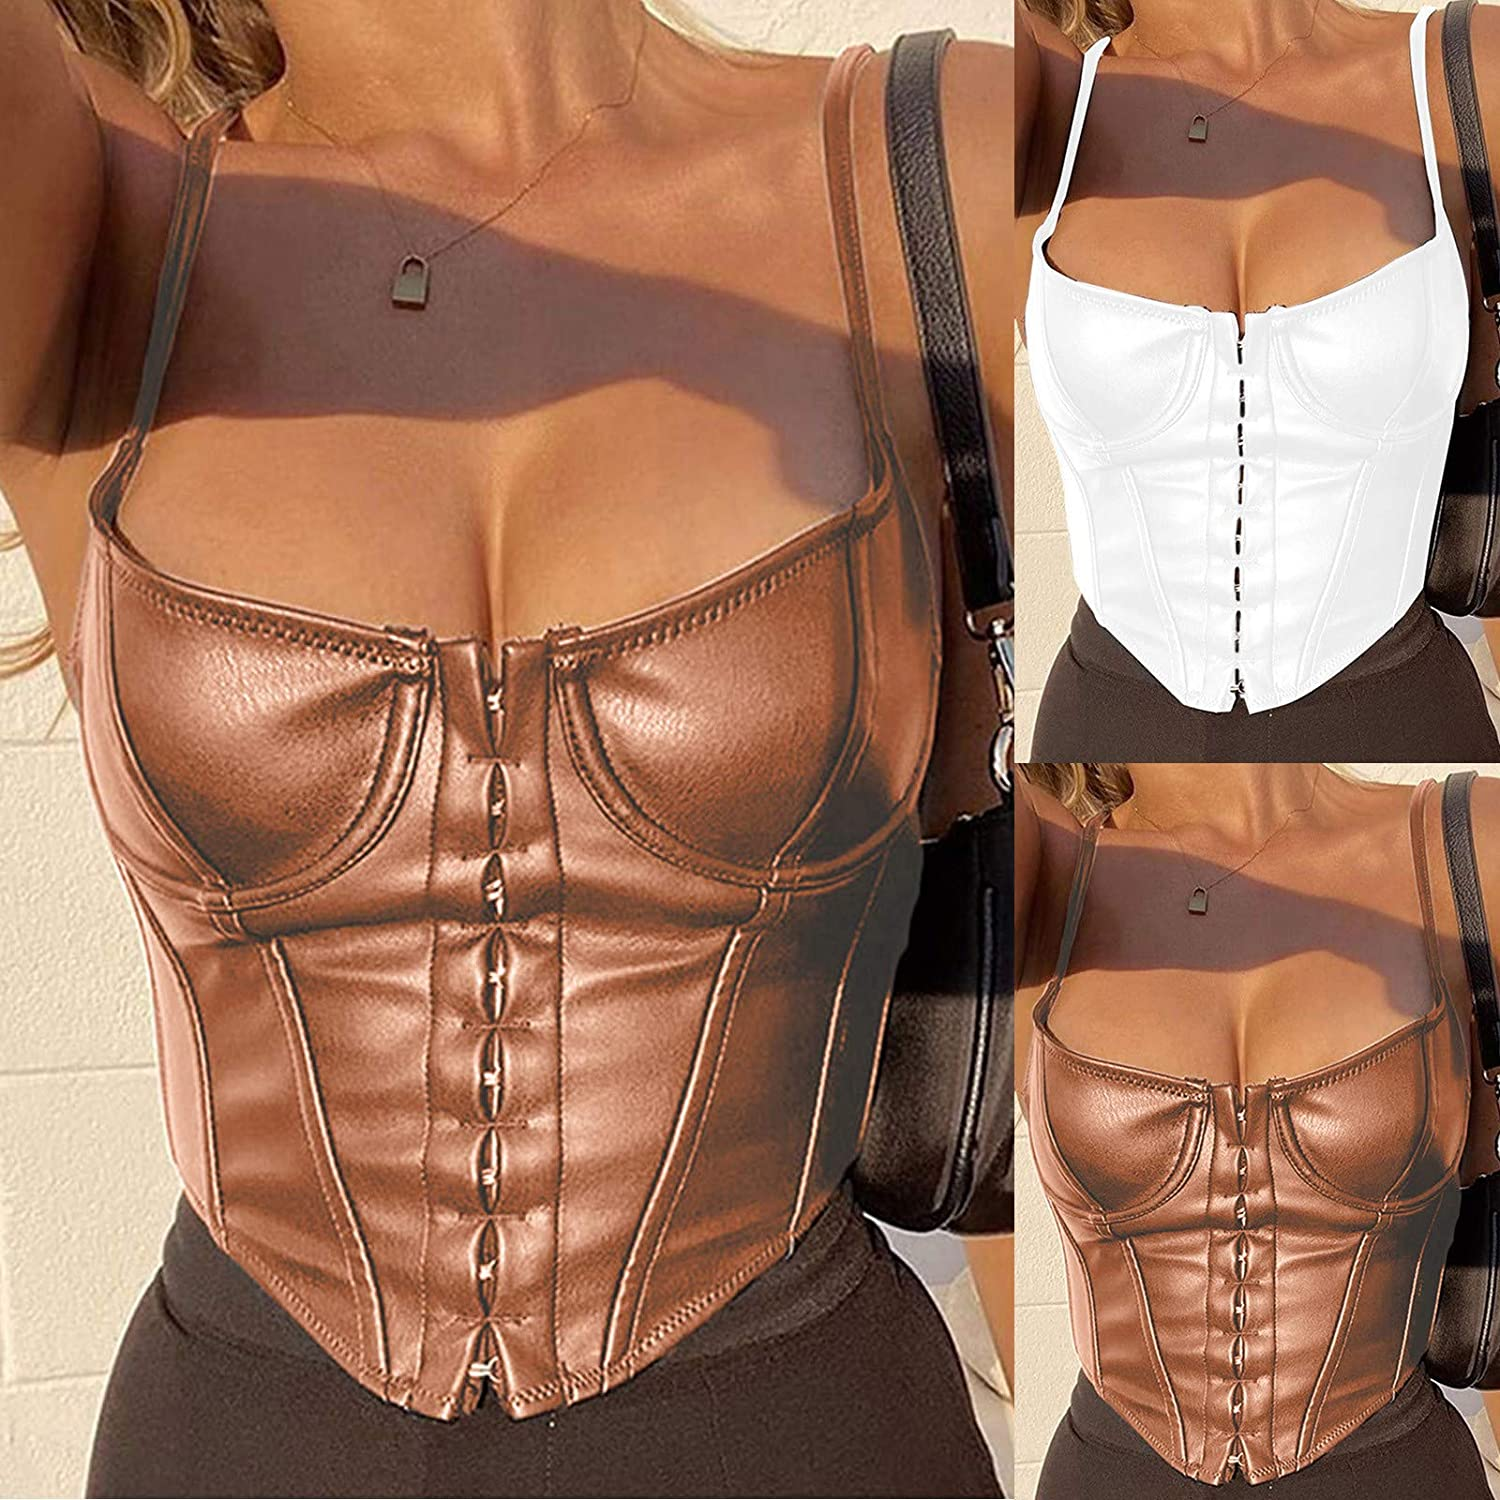 AODONG Crop Top Tank Tops for Women Sexy,Leather Top Spaghetti Straps Bustier PU Corsets Backless Bra Lingerie Camis